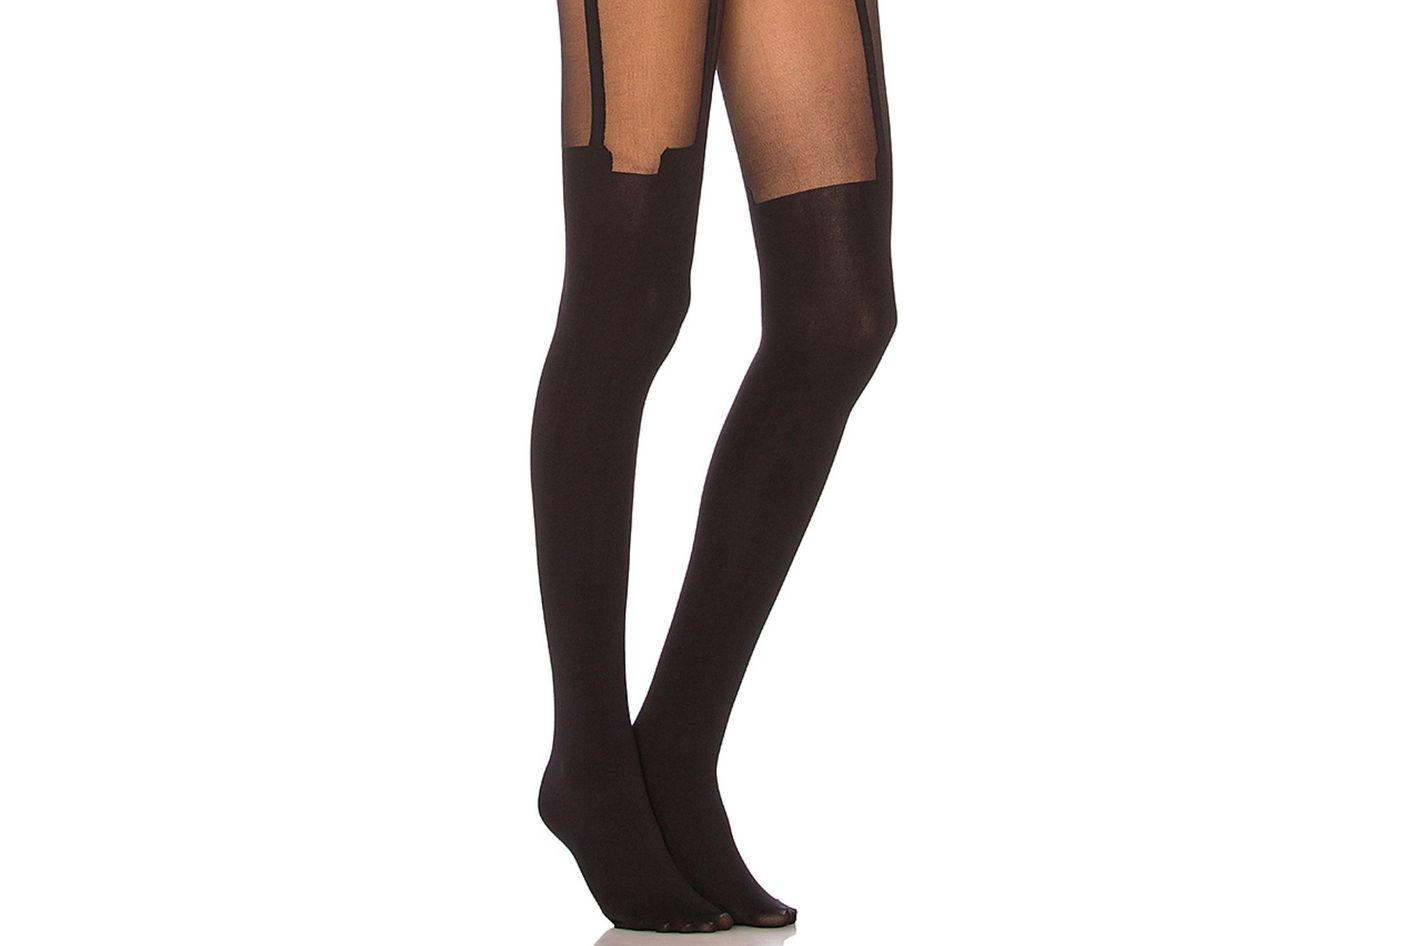 d5cc73b5285 Pretty Polly House of Holland Super Suspender Tights